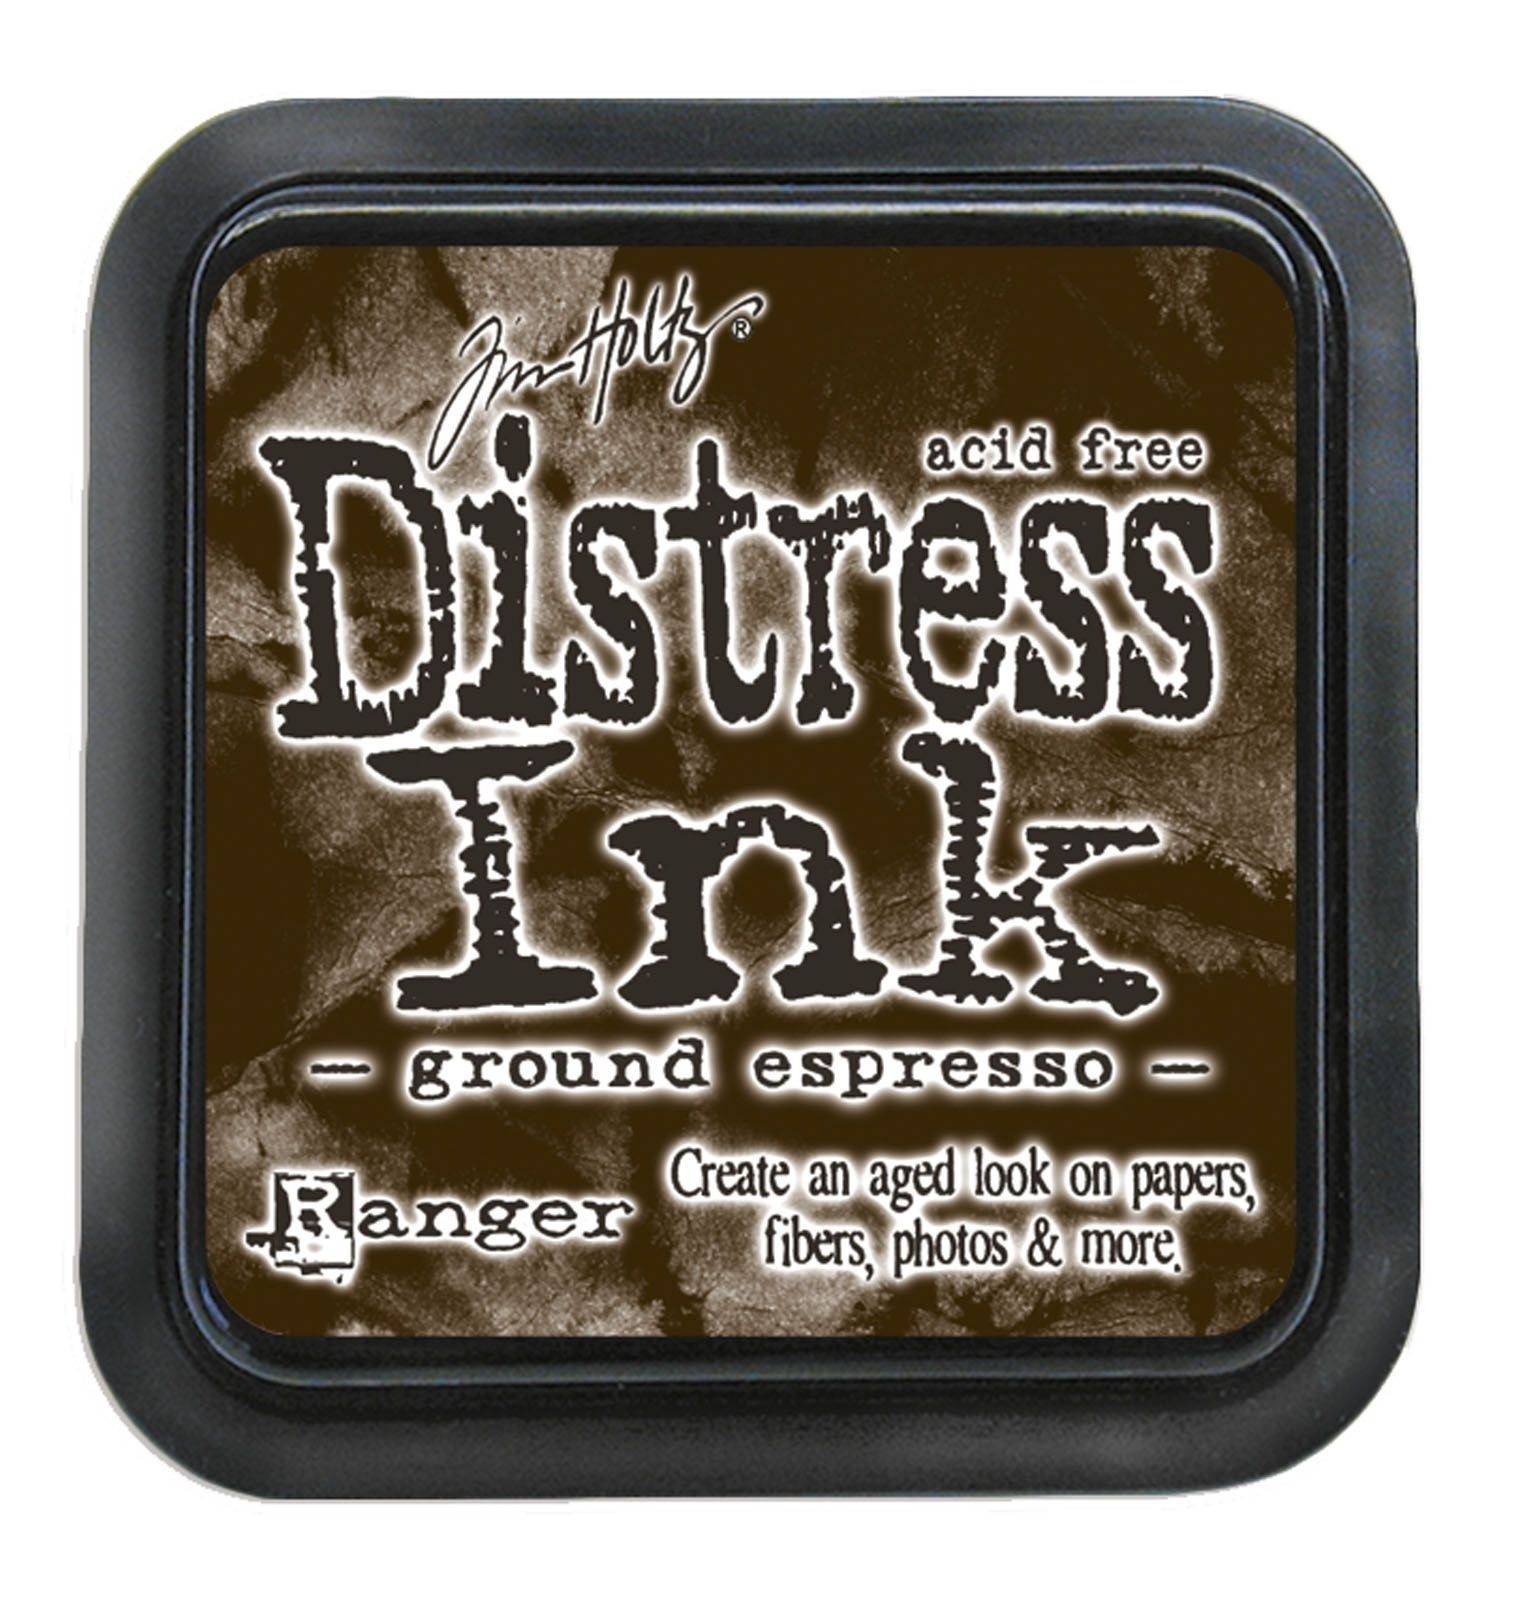 Tim Holtz Distress Ink tintapárna - ground espresso